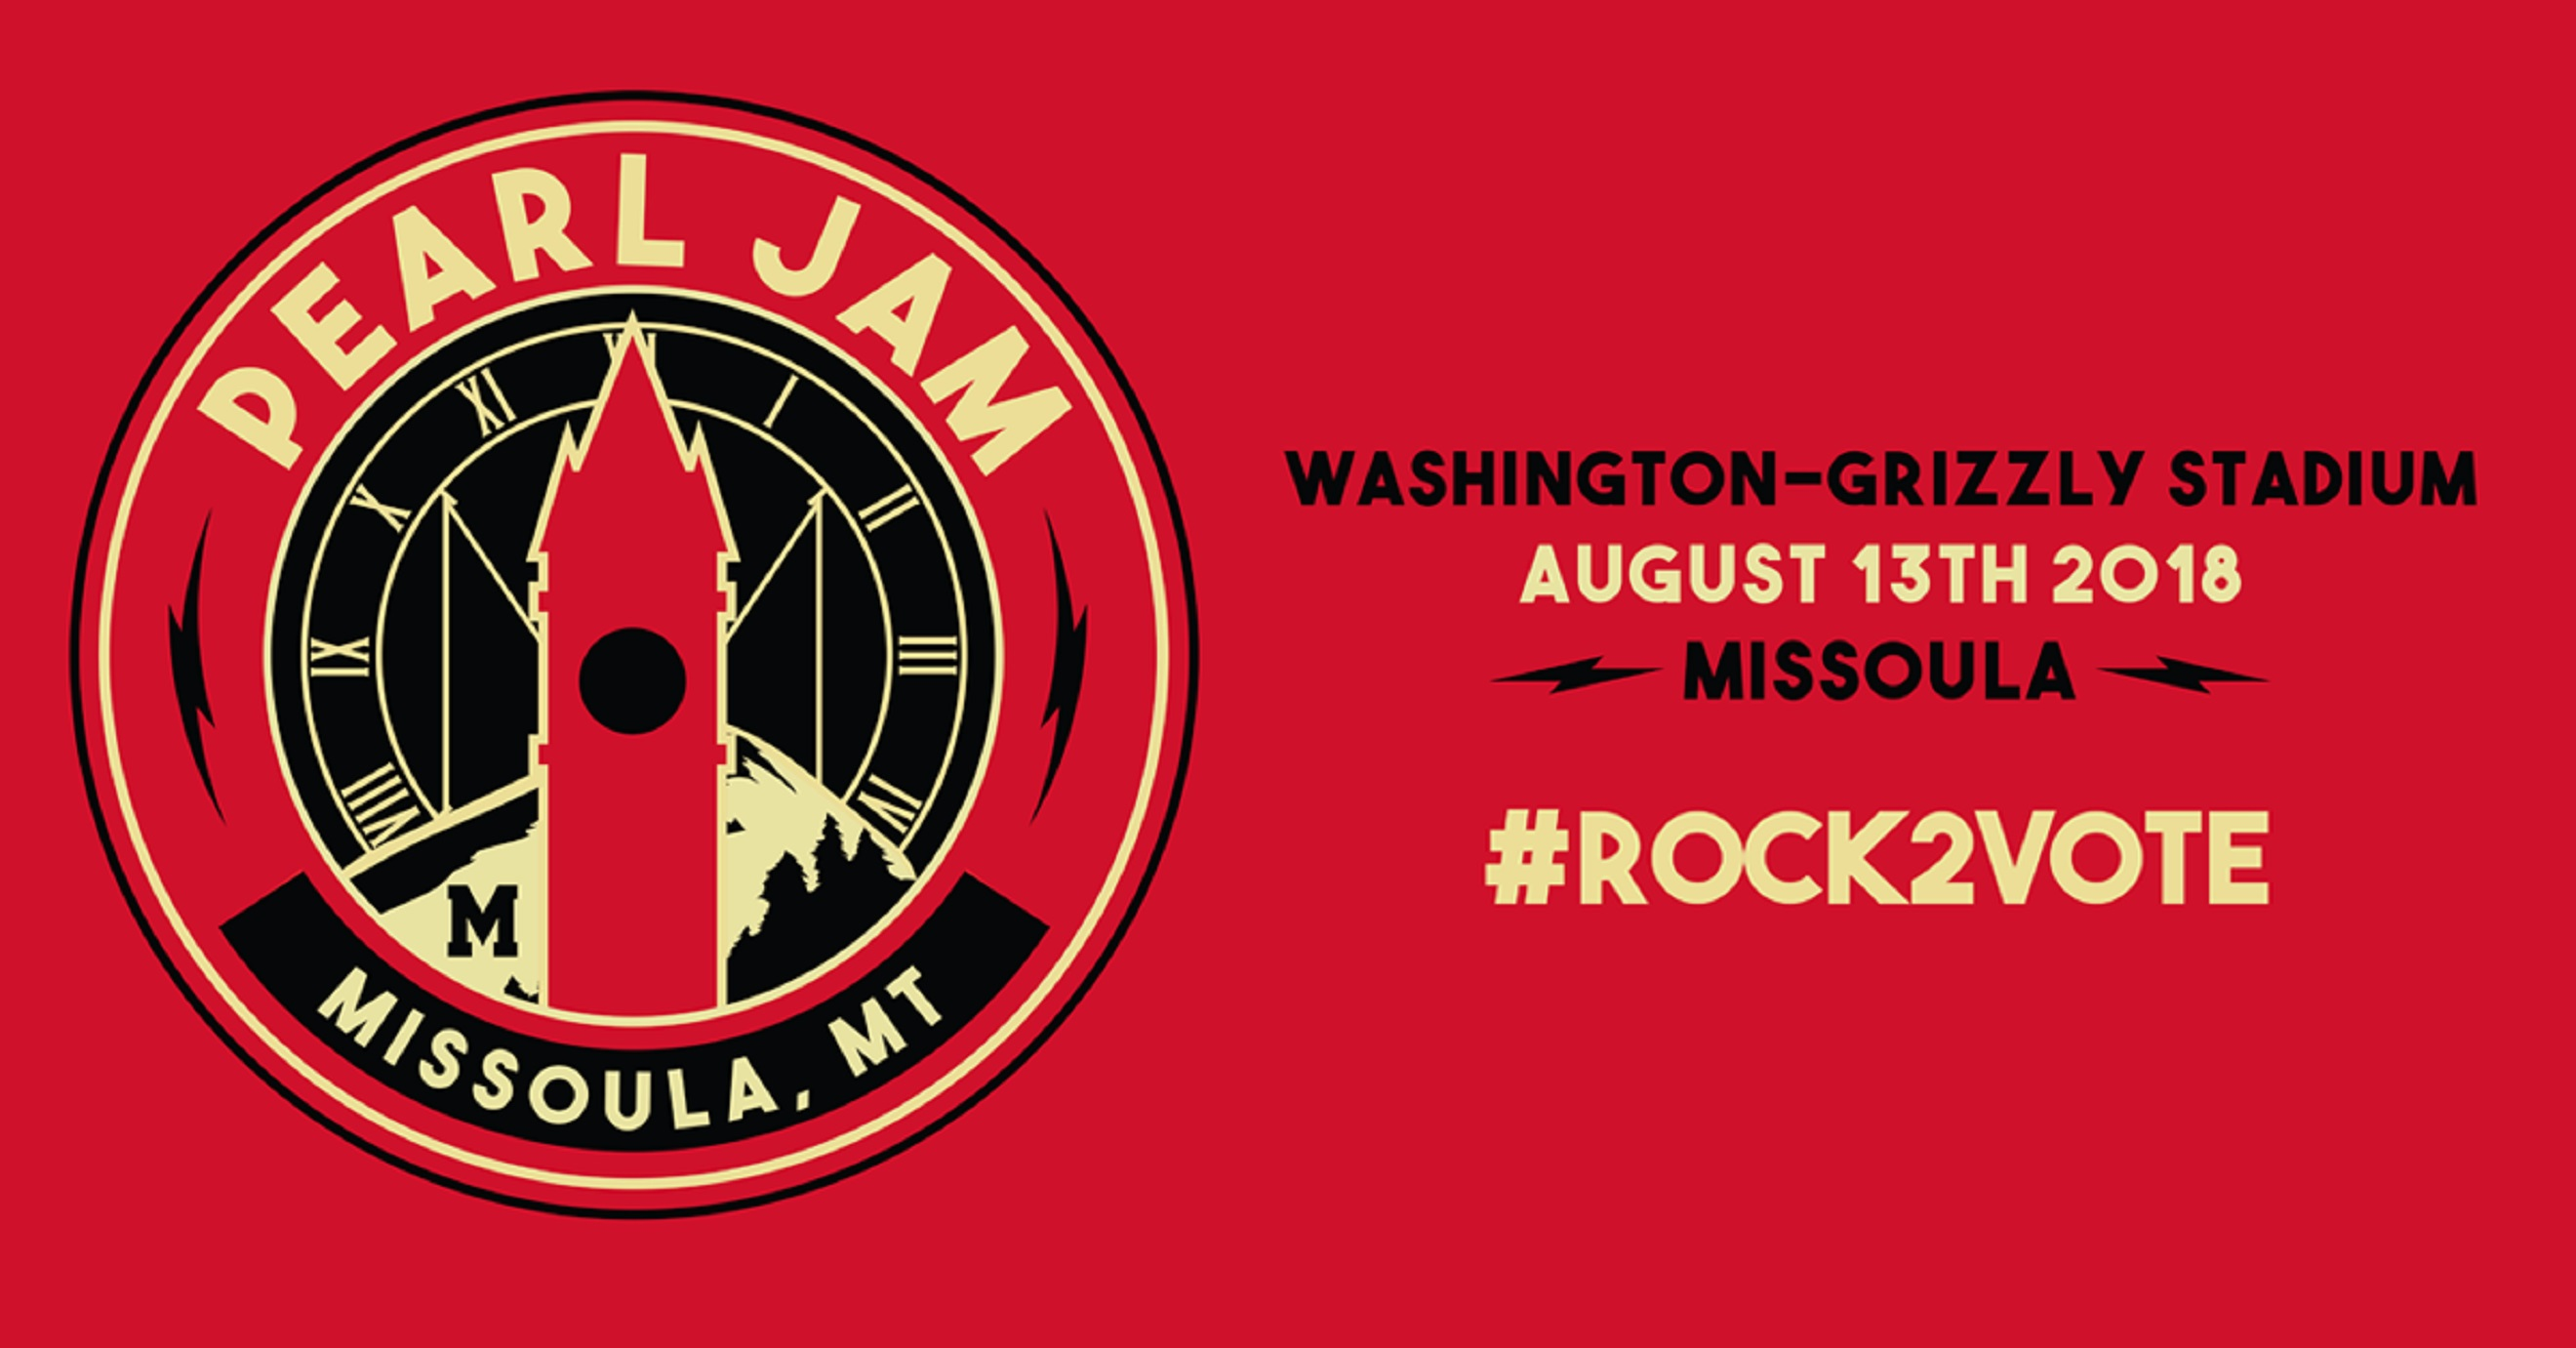 Pearl Jam Introduces #Rock2Vote